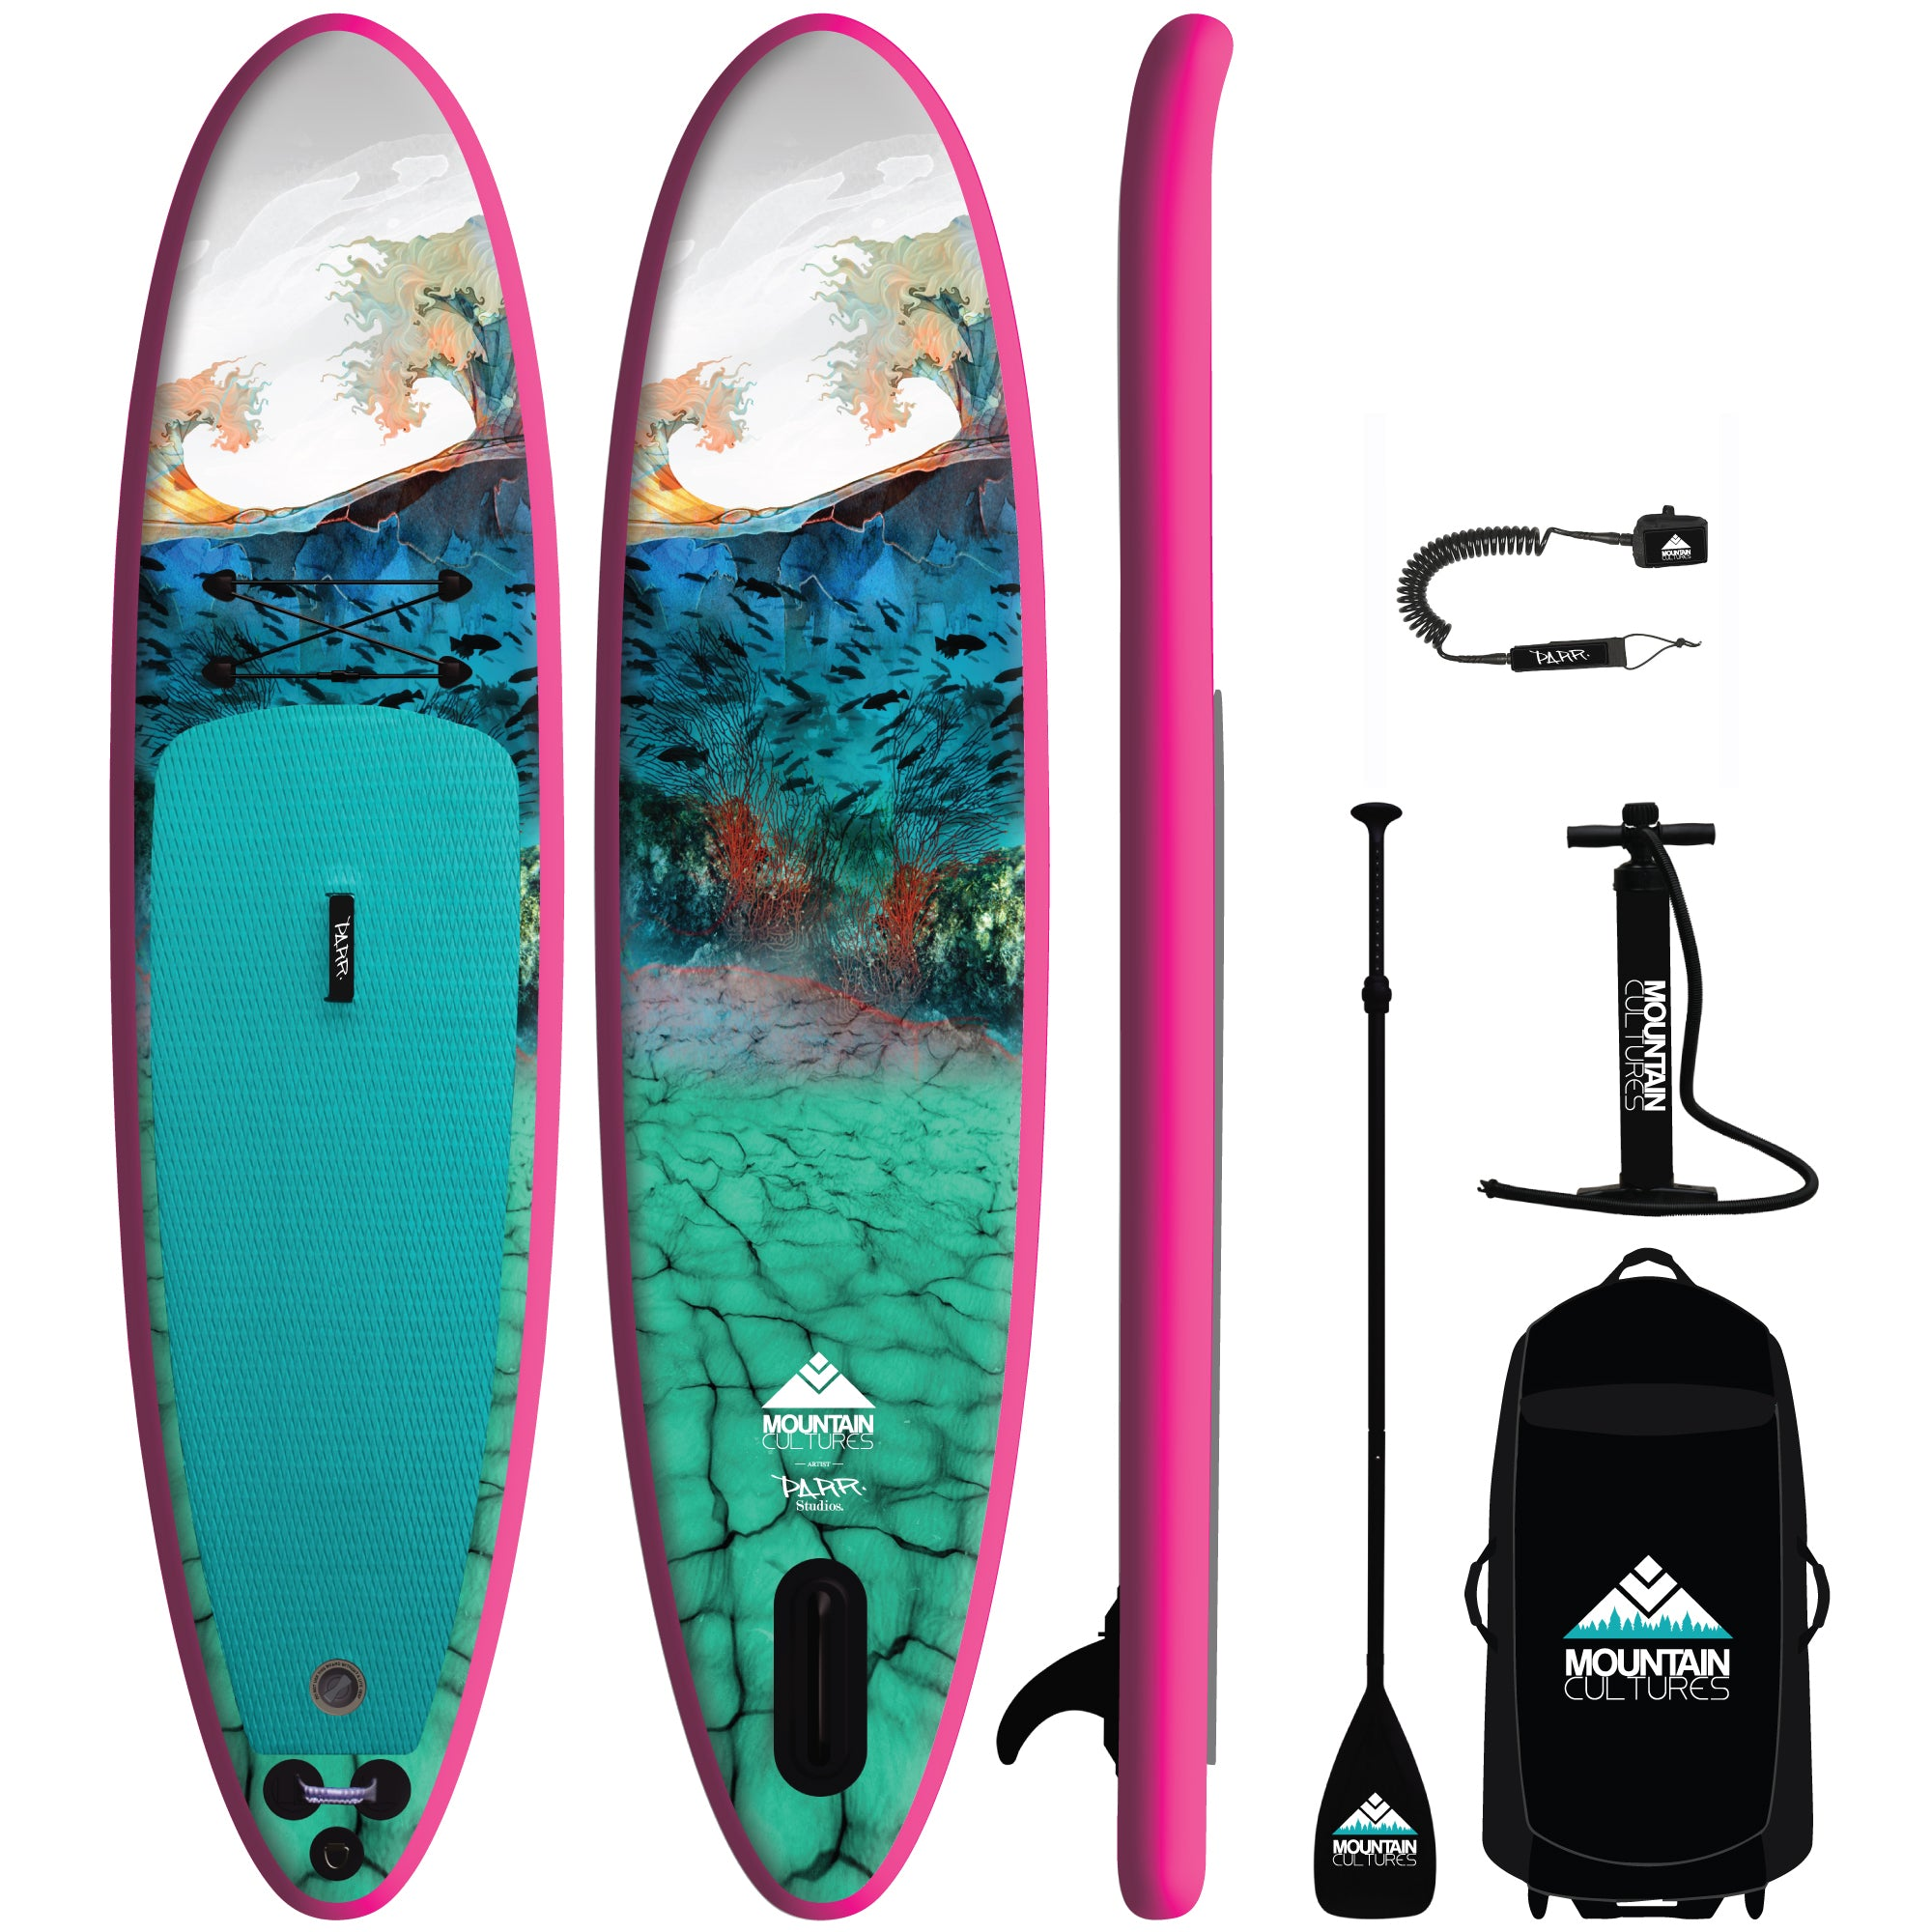 2021 MC/PARR Inflatable 11.0  Paddle Board Package - PINK RAIL